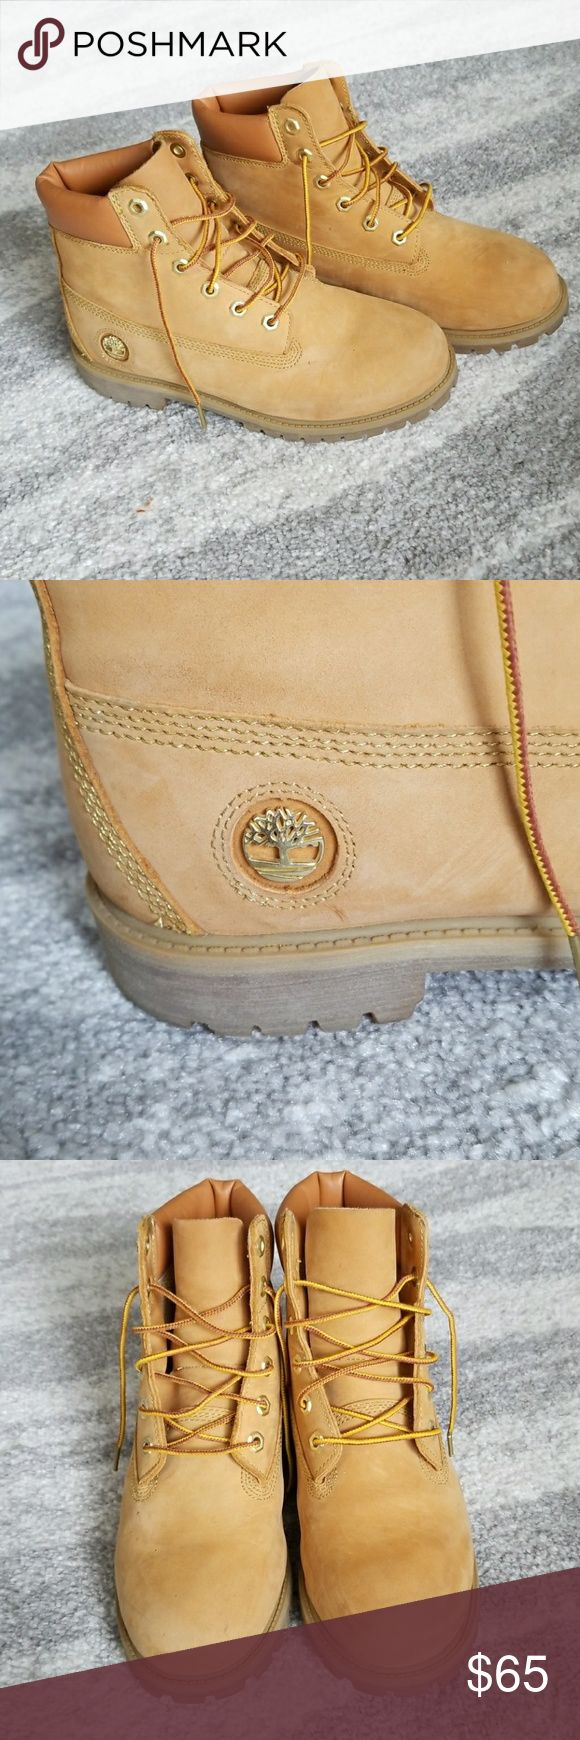 LOWEST PRICE! Women's Timberland boots Very good condition women's timberlands in tan. Very durable and matches all colors! Pair with jeans, shorts, or leggings for a long day of walking. Timberland Shoes